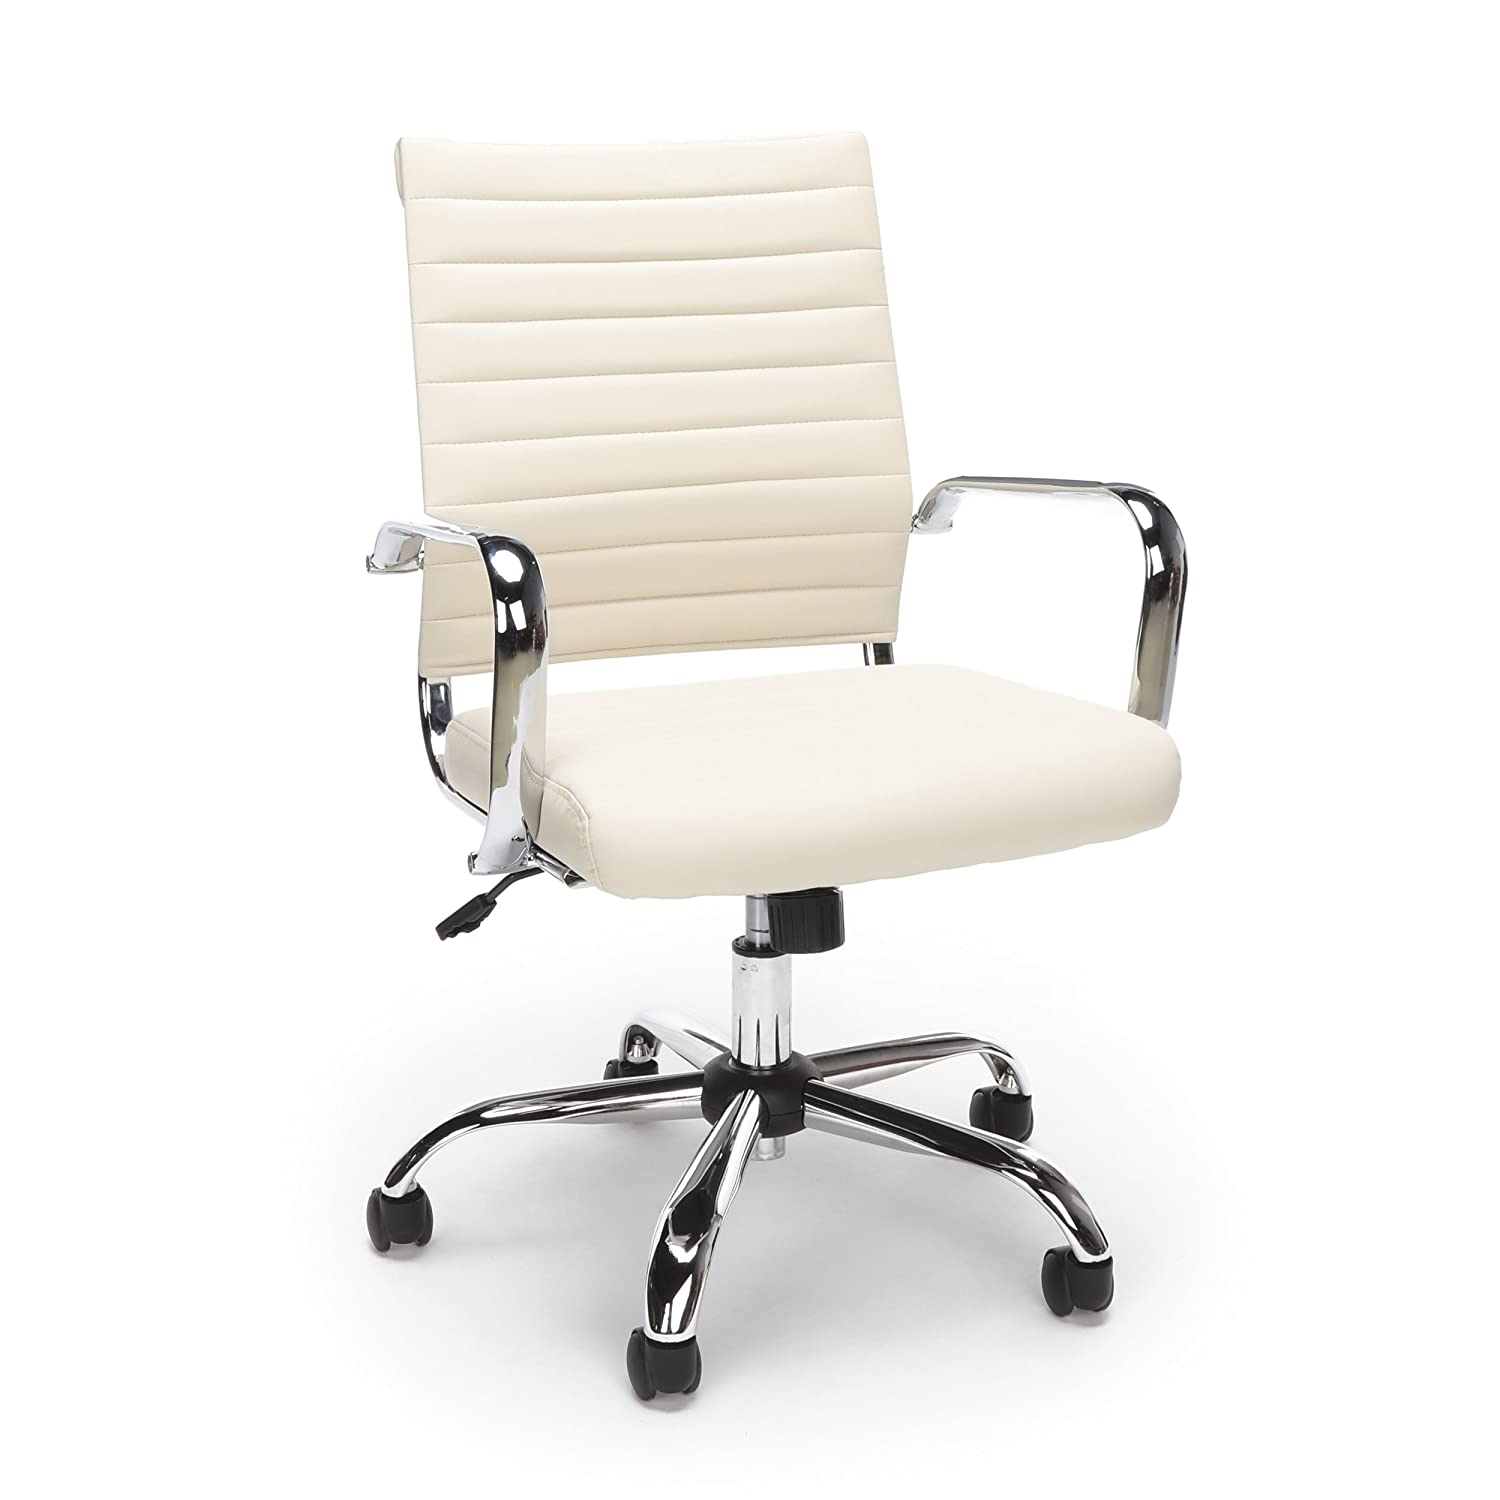 Essentials Soft Ribbed Leather Executive Conference Chair with Arms - Ergonomic Adjustable Swivel Chair, Ivory/Chrome (ESS-6095-IVY)